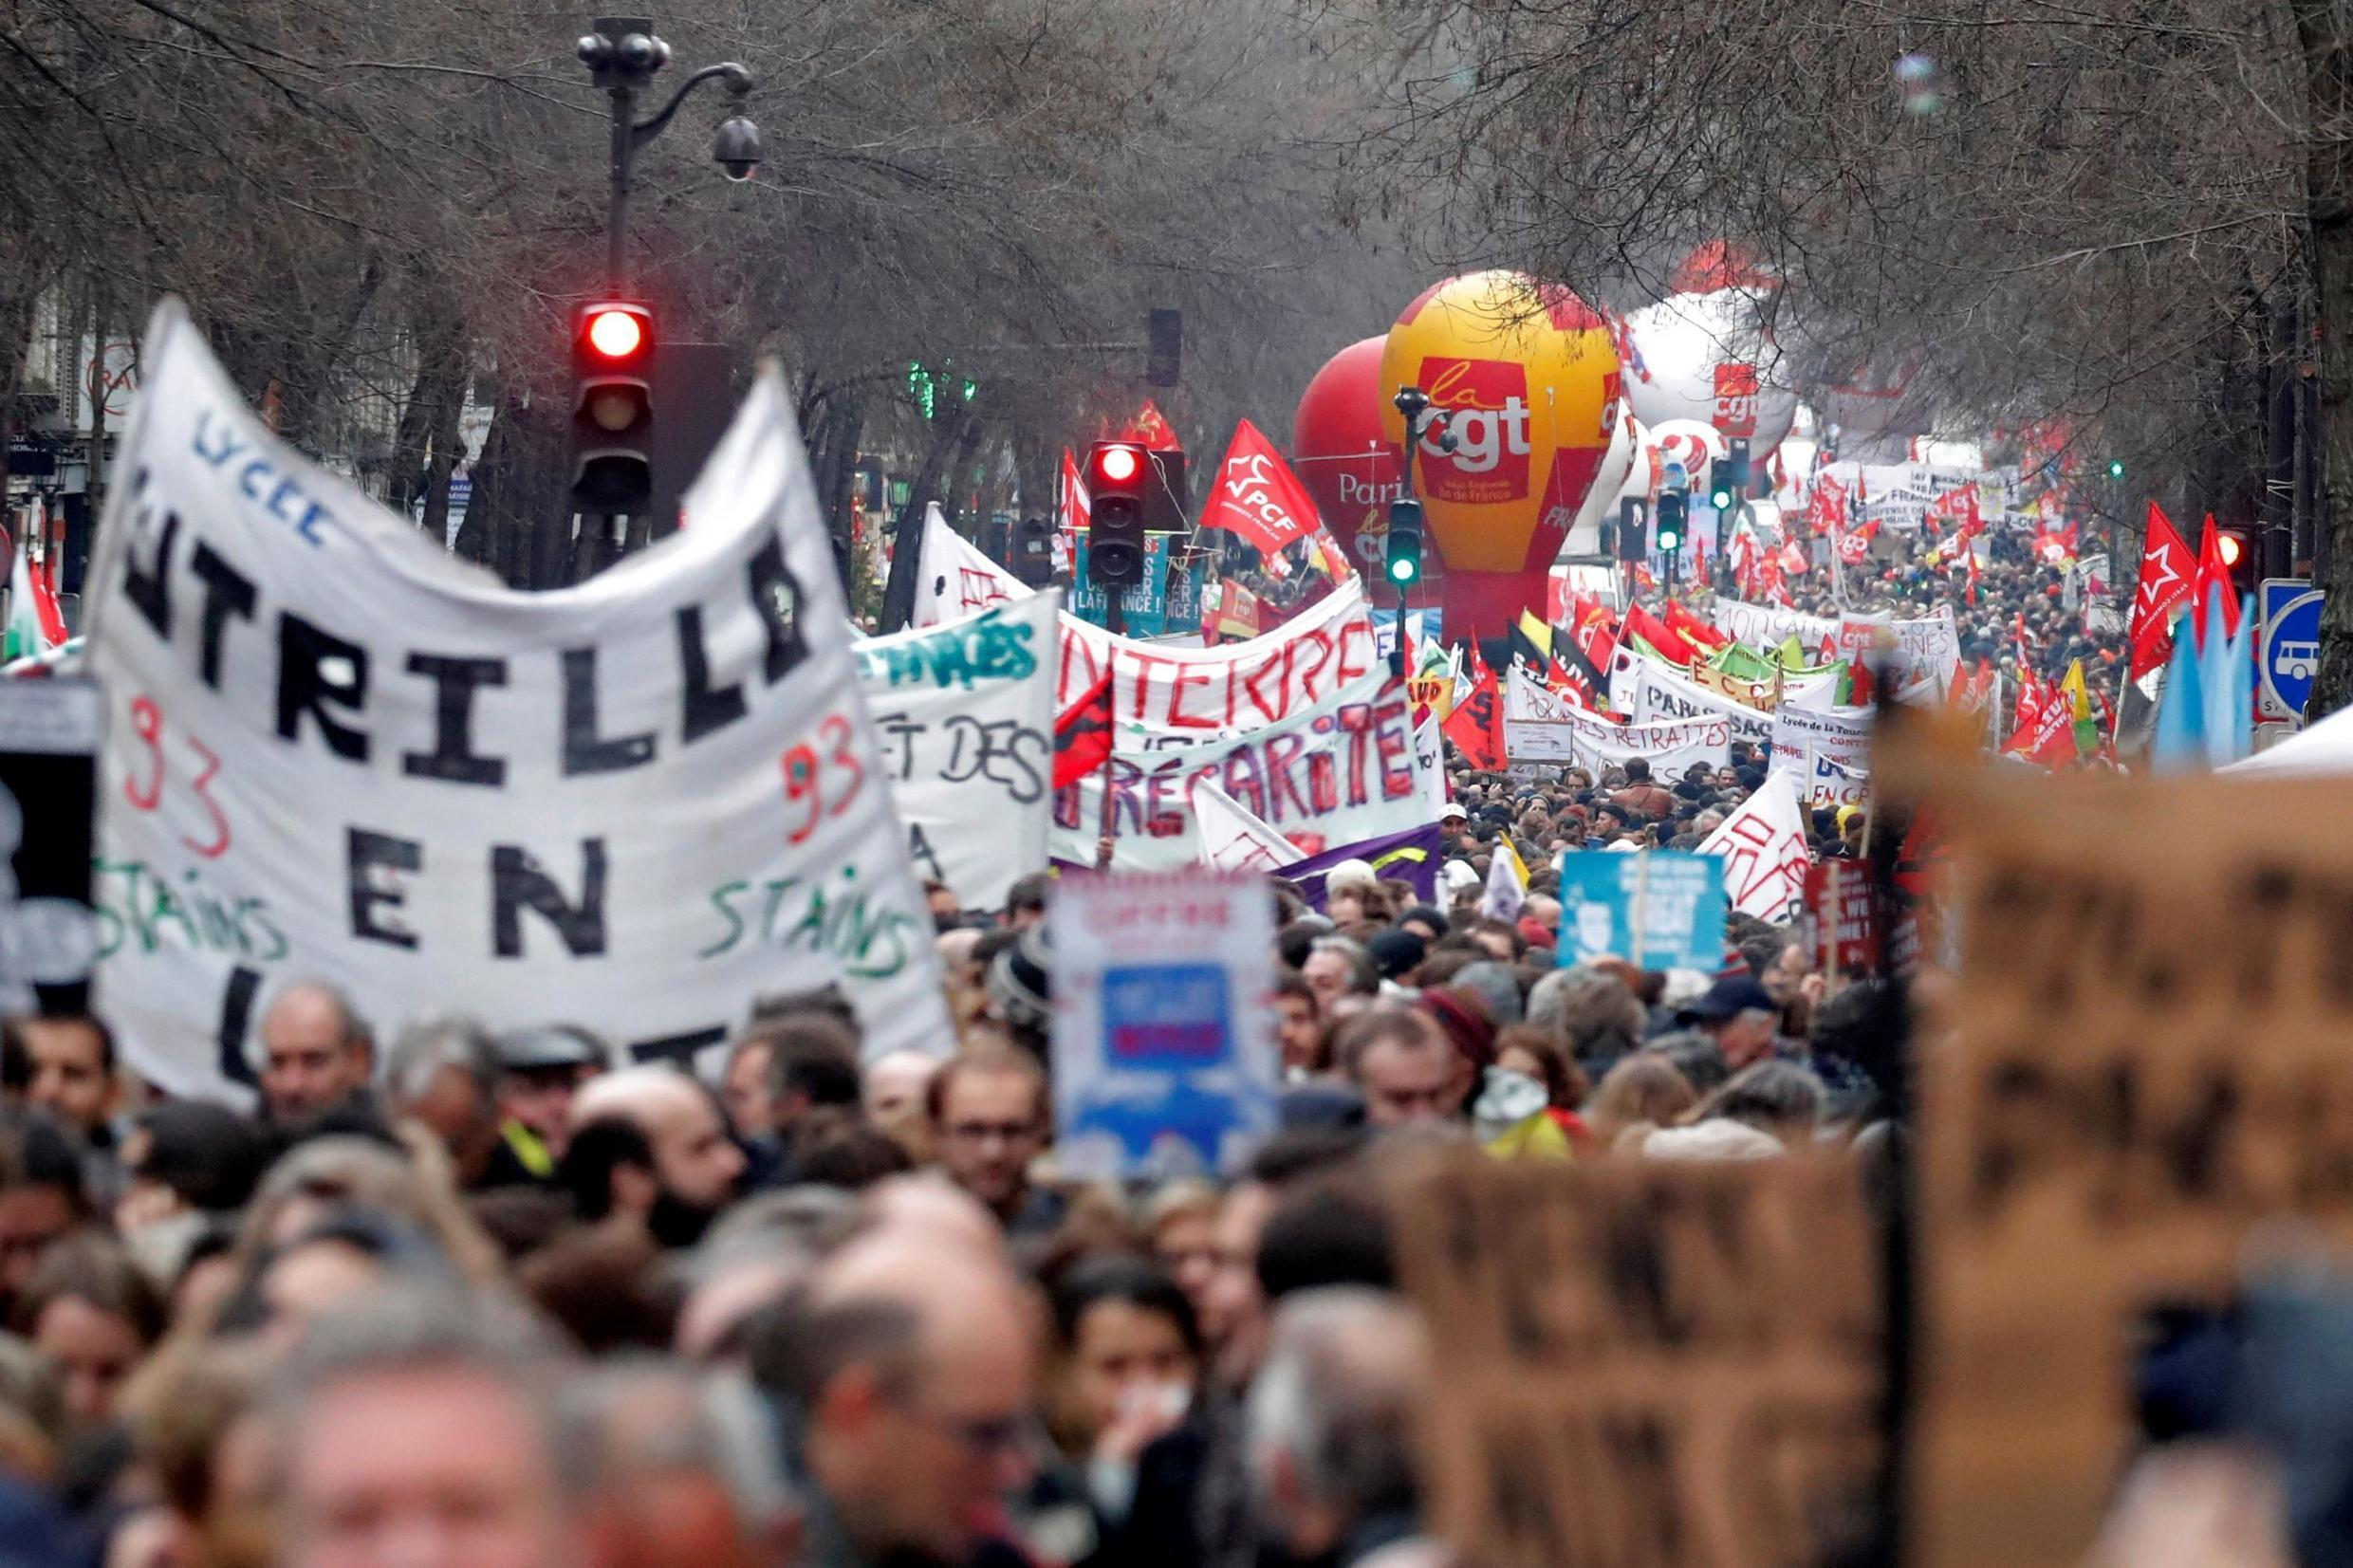 President Emmanuel Macron's pensions reform brought thousands of people onto the streets in protest and led to crippling strikes.